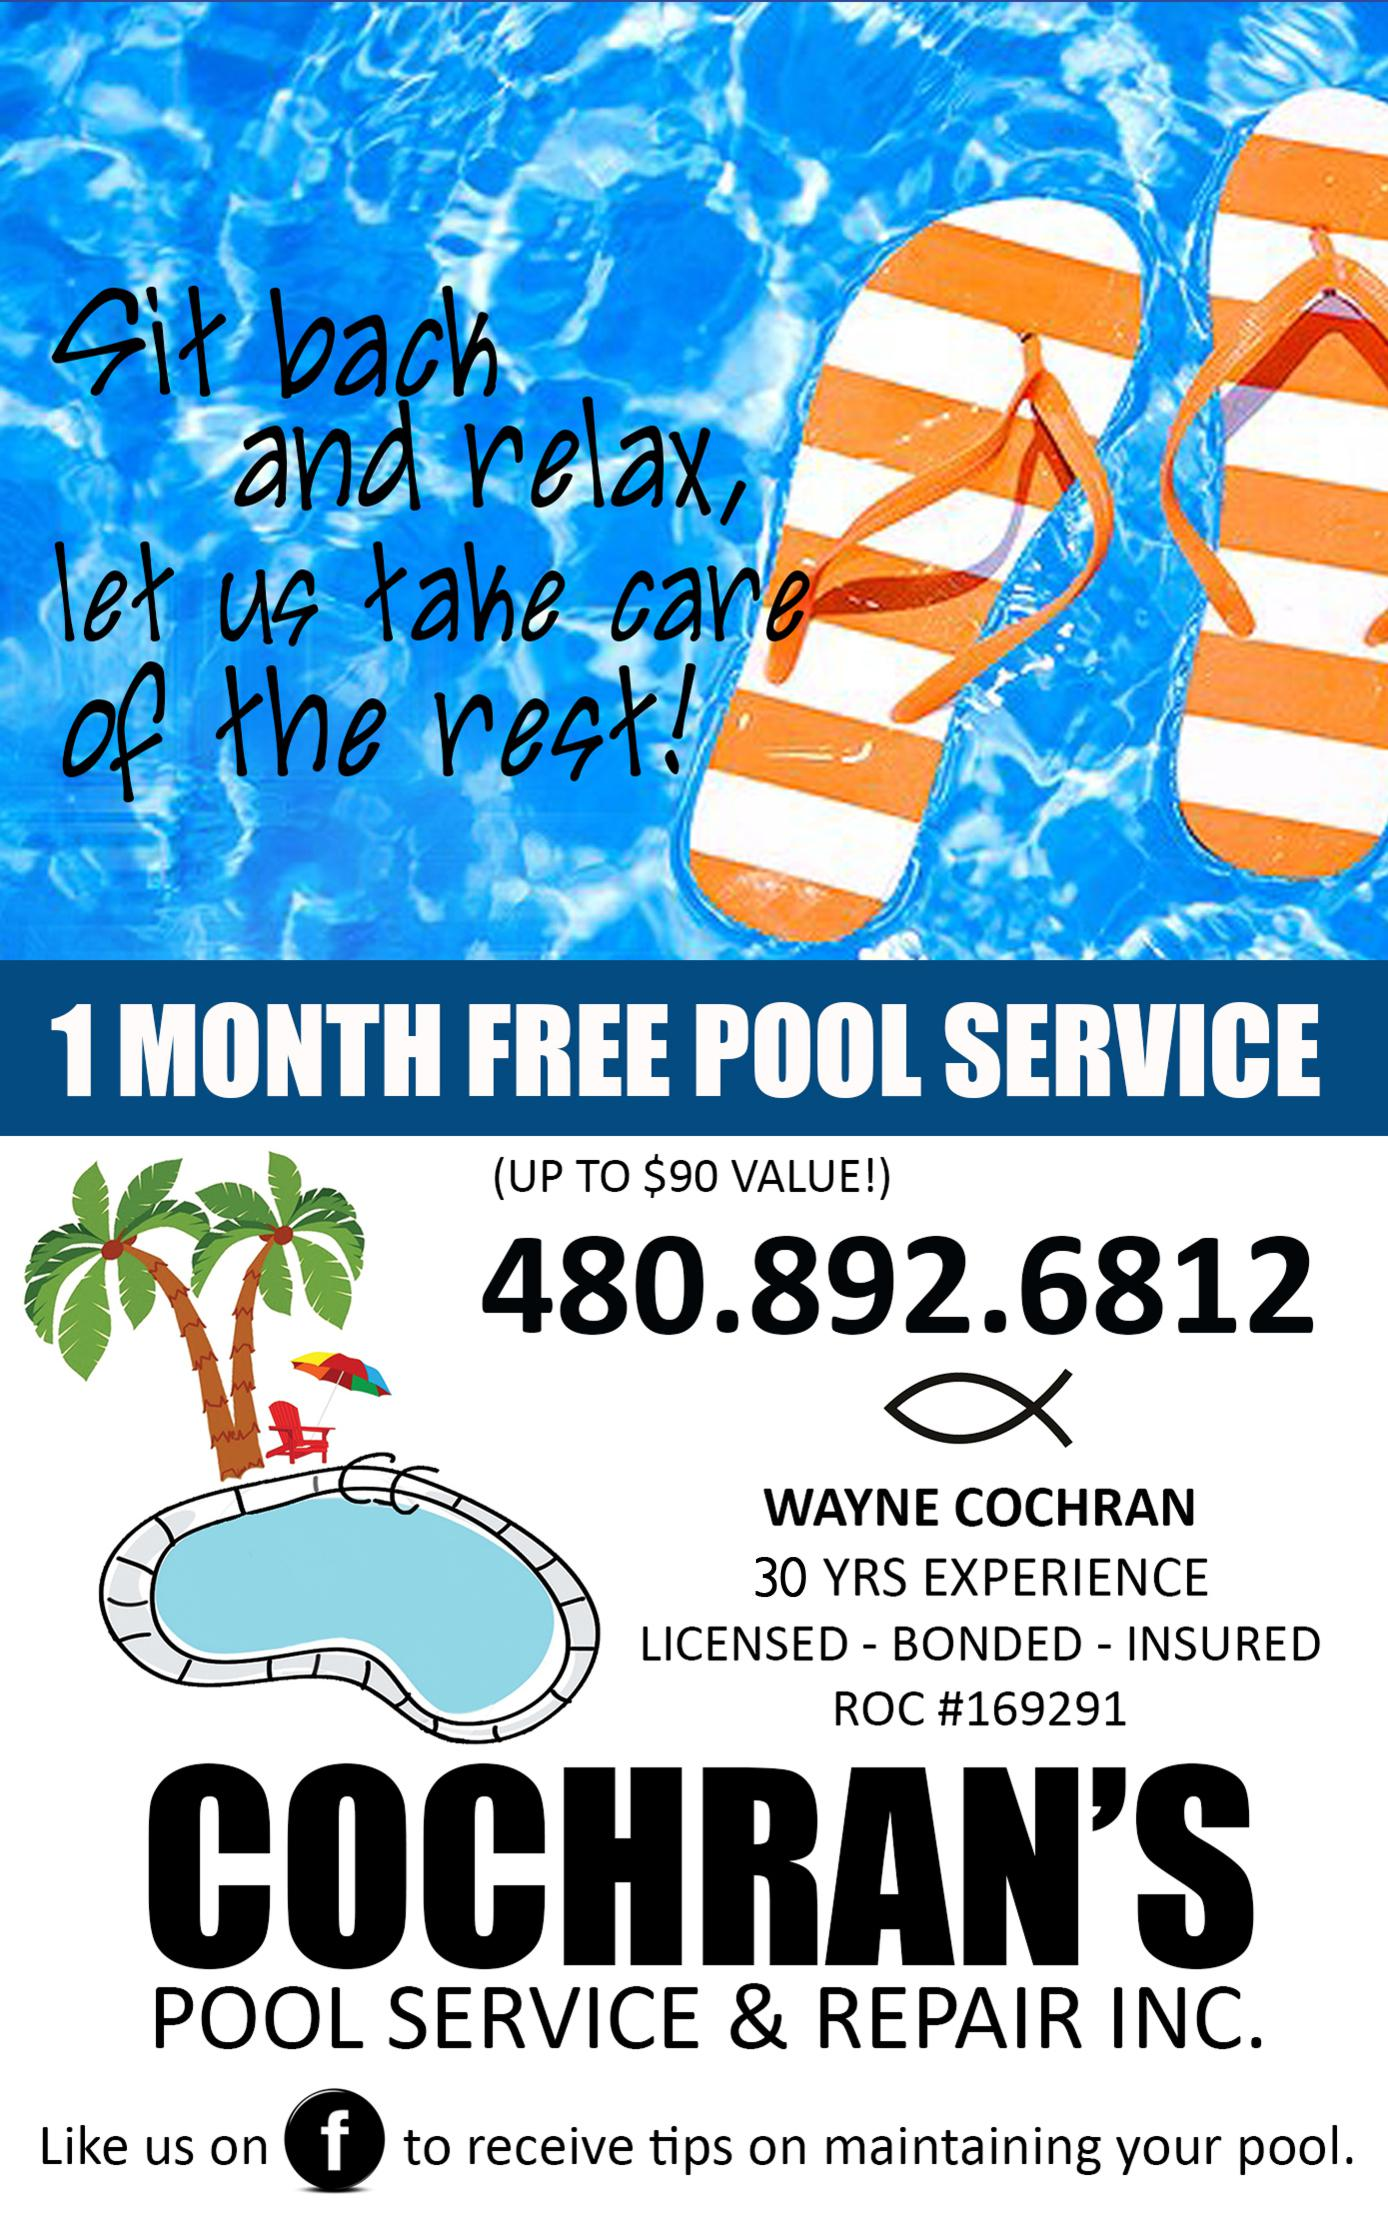 Cochran's Pool Service & Repair, Inc.